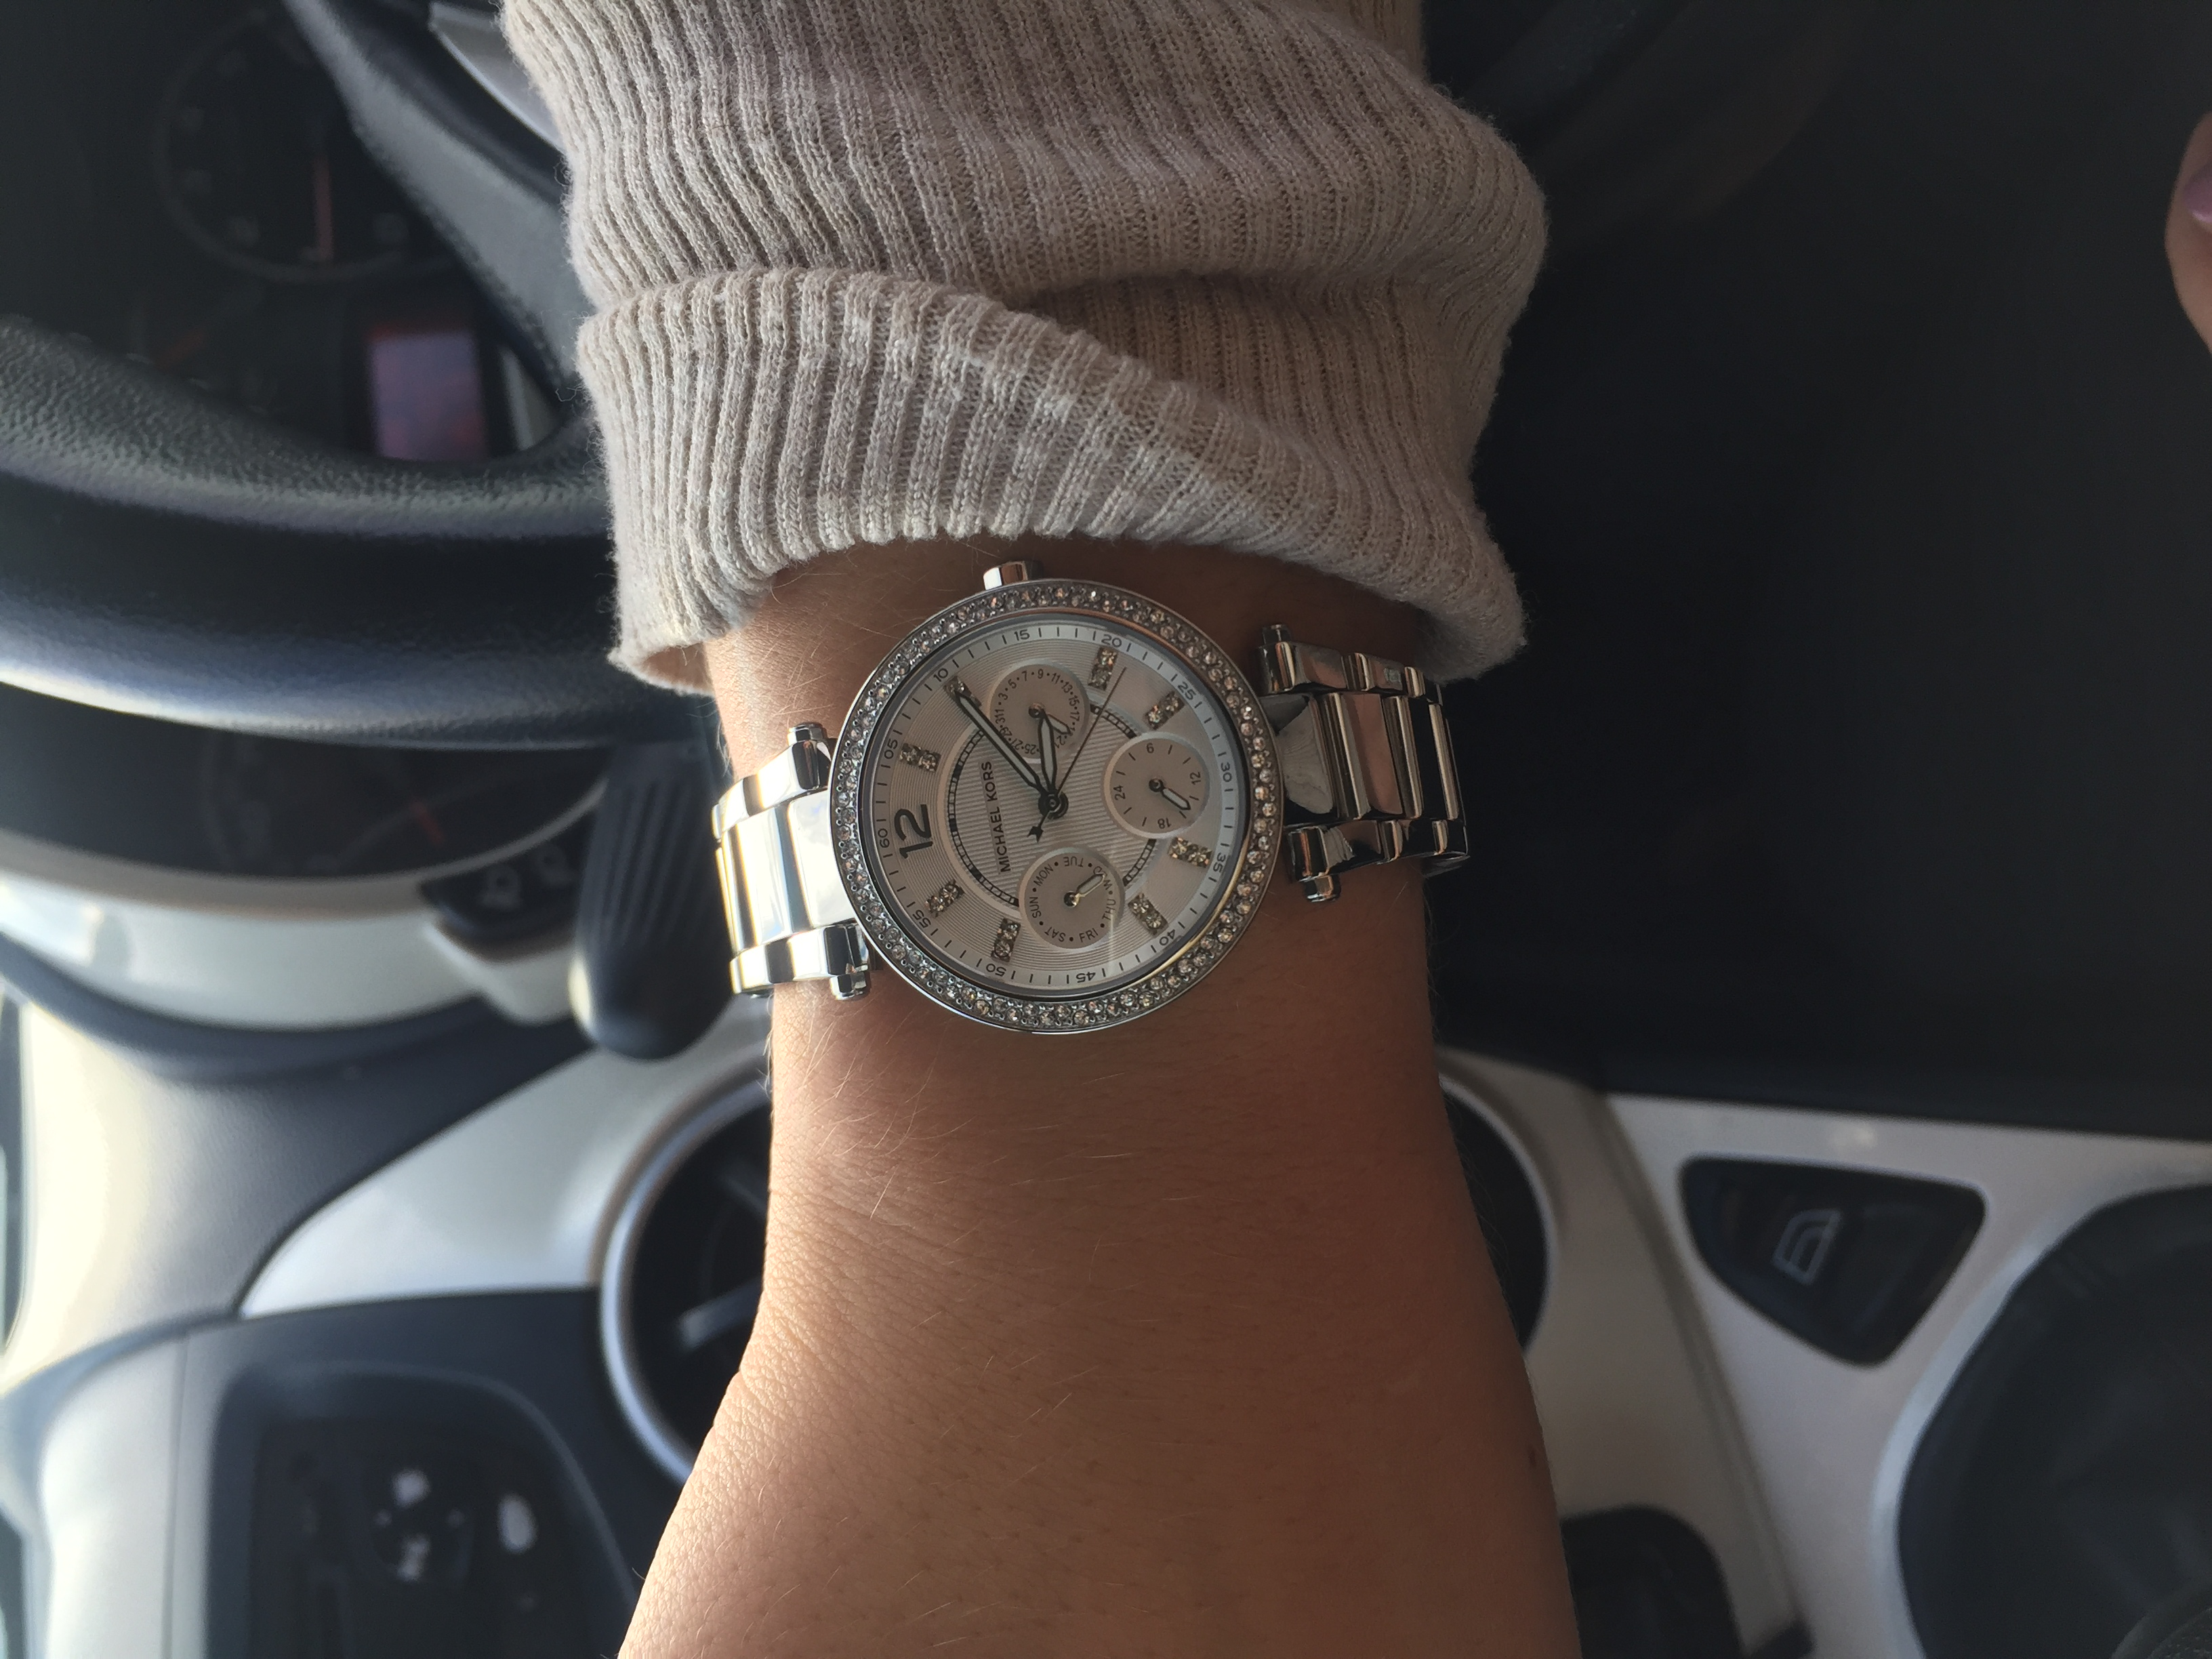 62e5a0cac4e0 I purchased this watch for my daughters 21st birthday